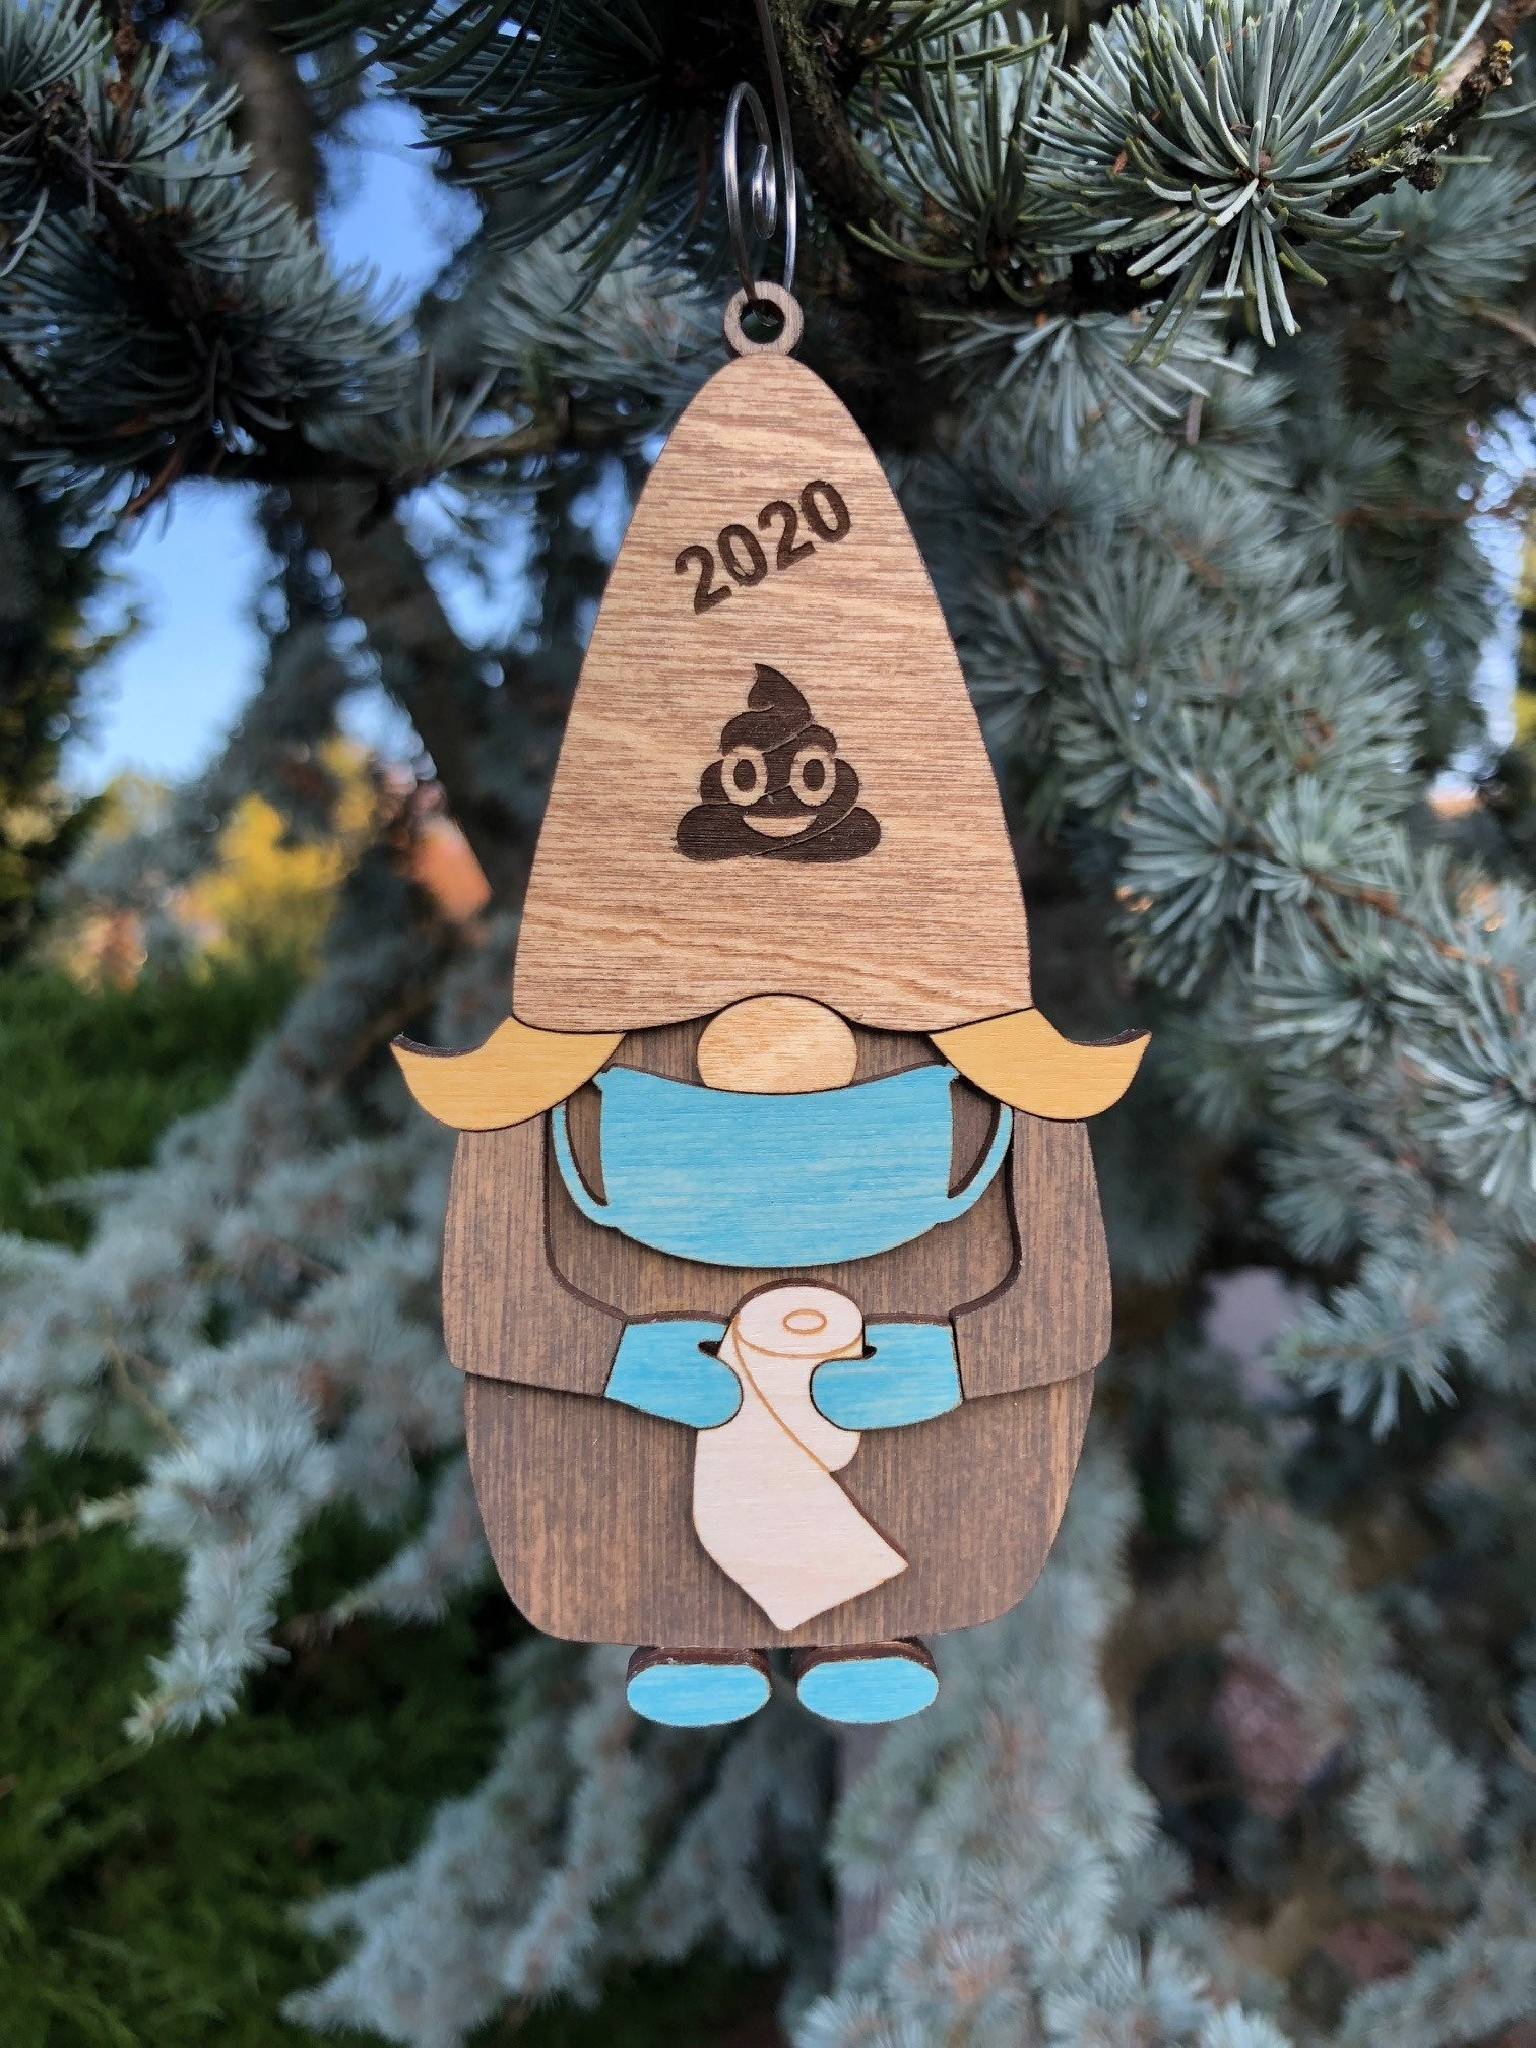 2020 Gnome with Toilet Paper 3D Wood Ornament